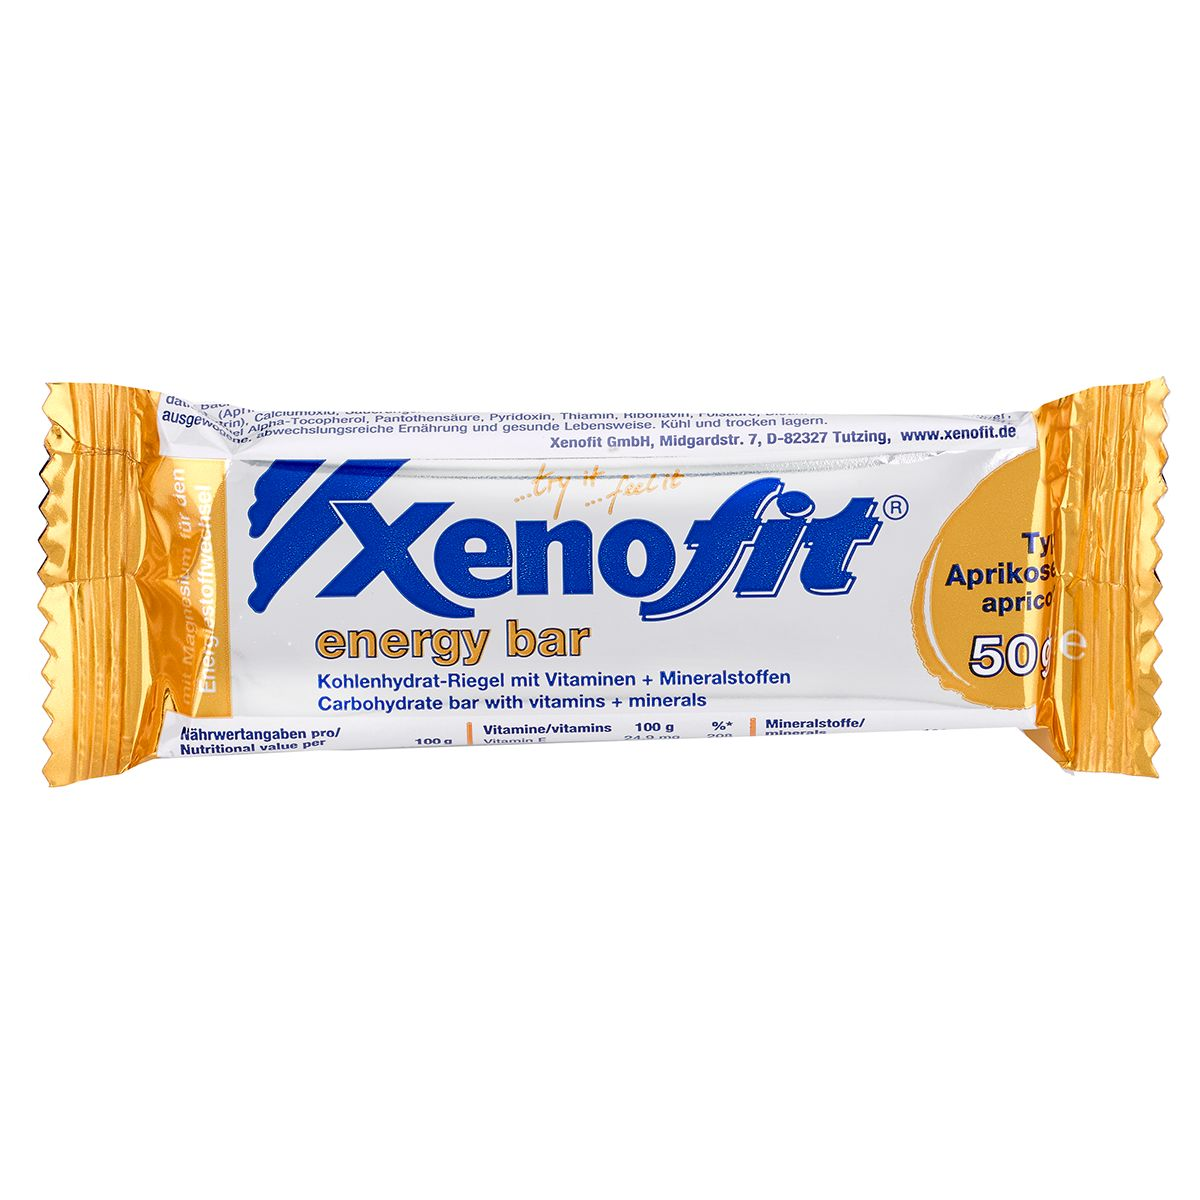 Xenofit Energy Bar carbohydrate bar with vitamins + minerals | Energibar